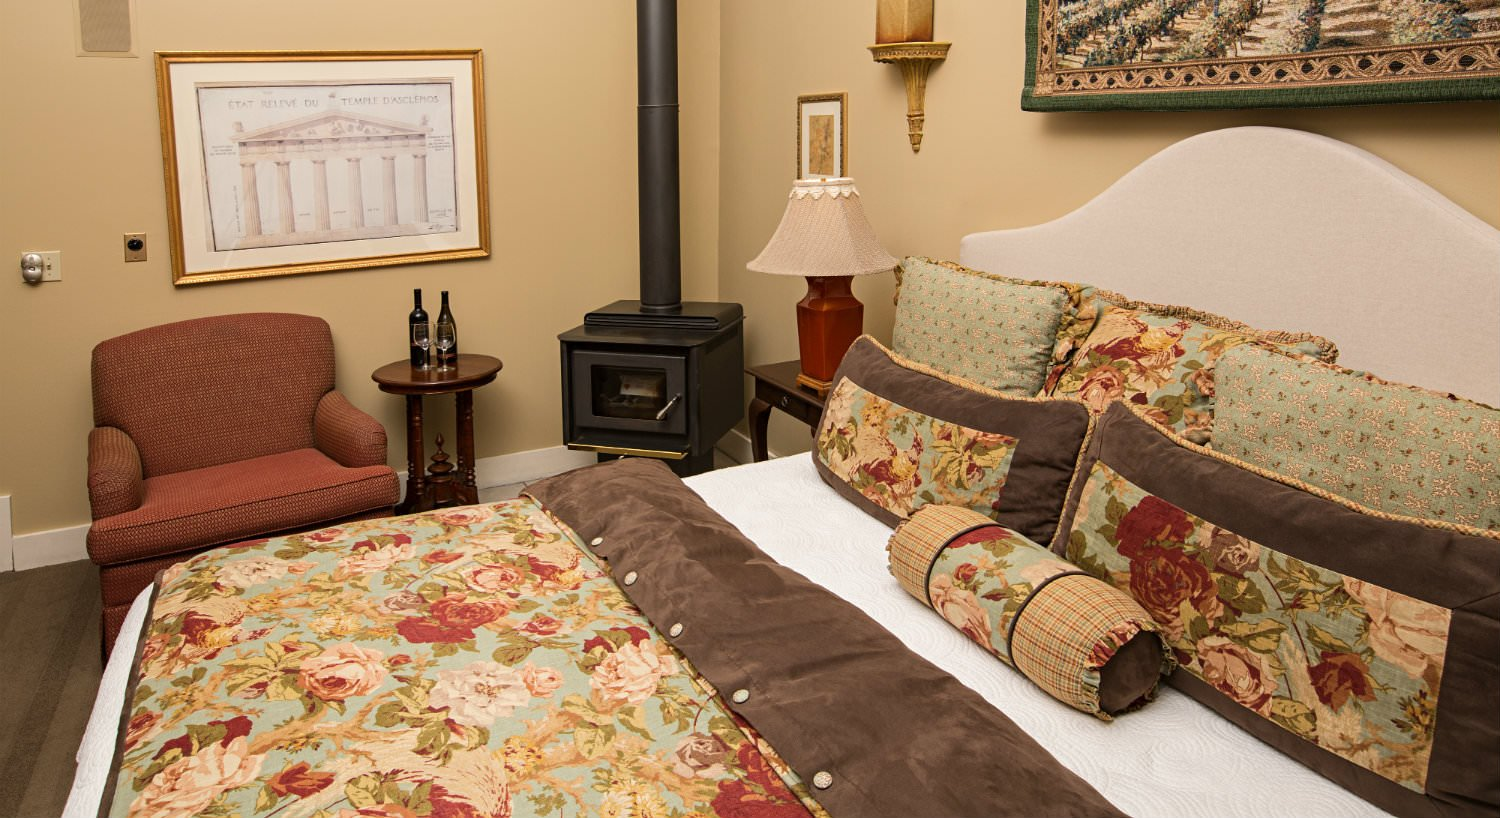 Bed with red, white, green, blue and brown floral comforter, tan walls, red chair with small table and wood stove